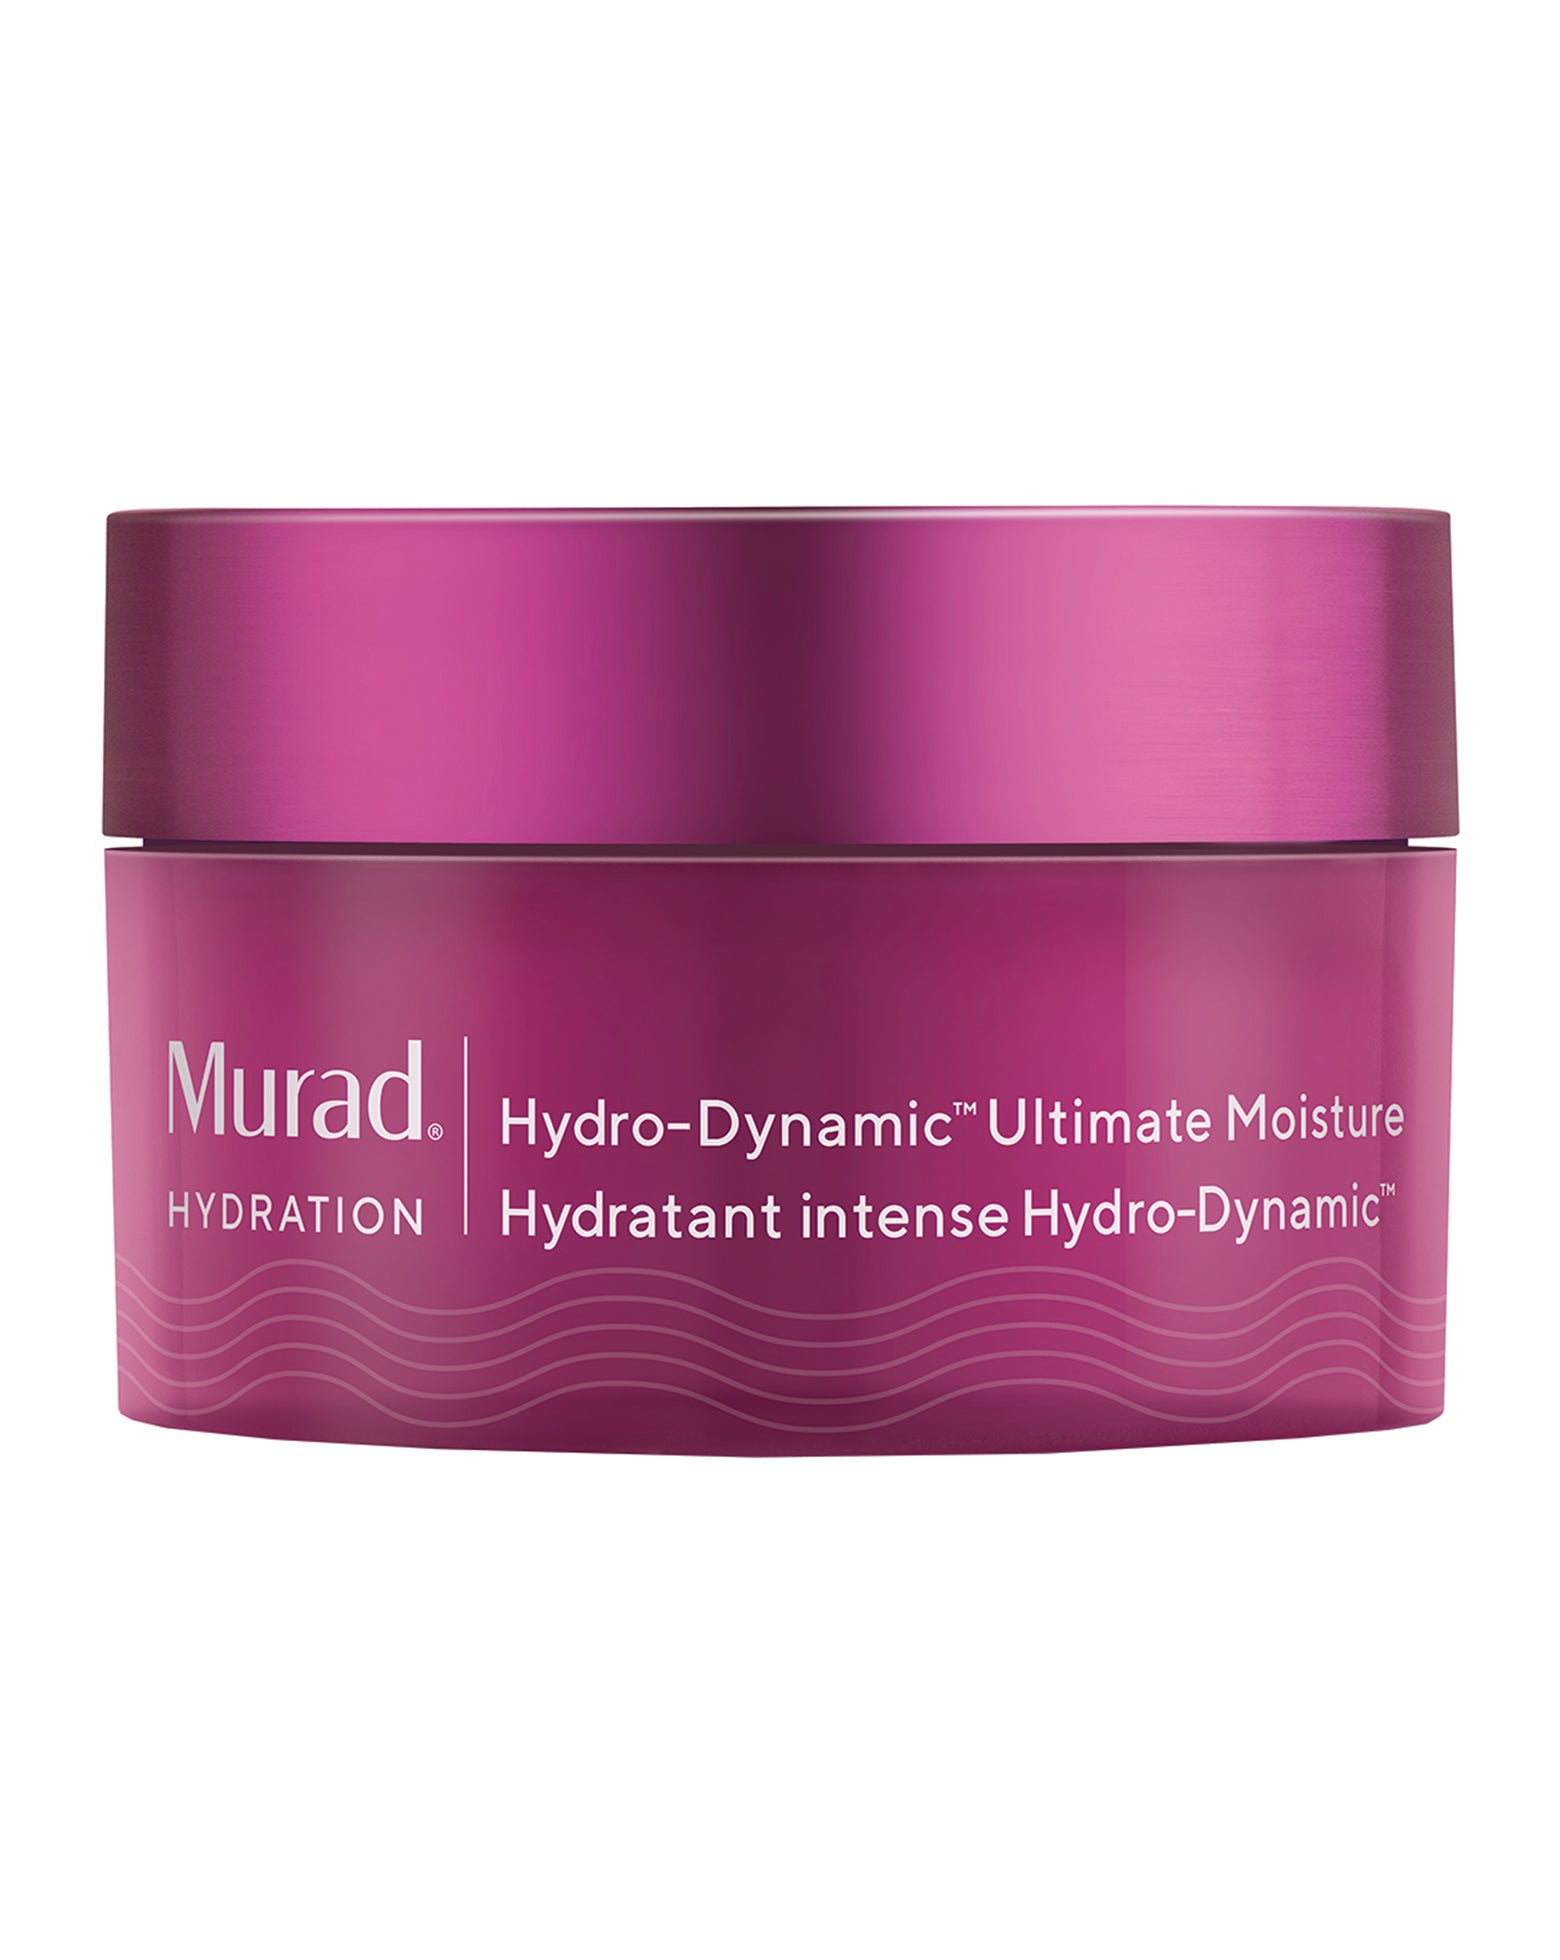 Hydro-Dynamic® Ultimate Moisture